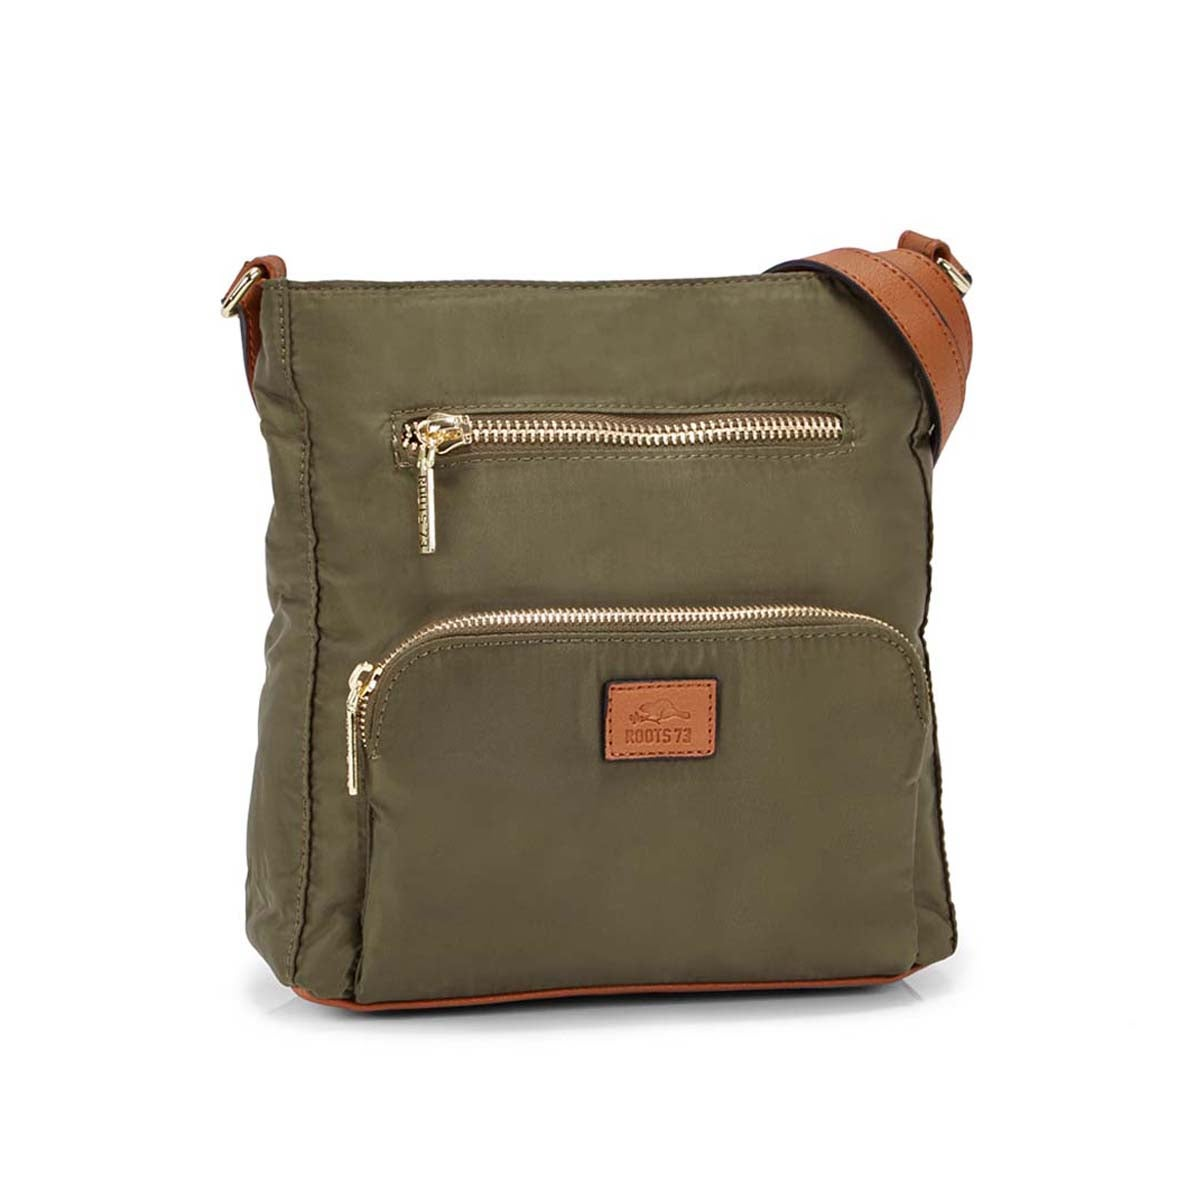 Women's R5327 khaki crossbody bag